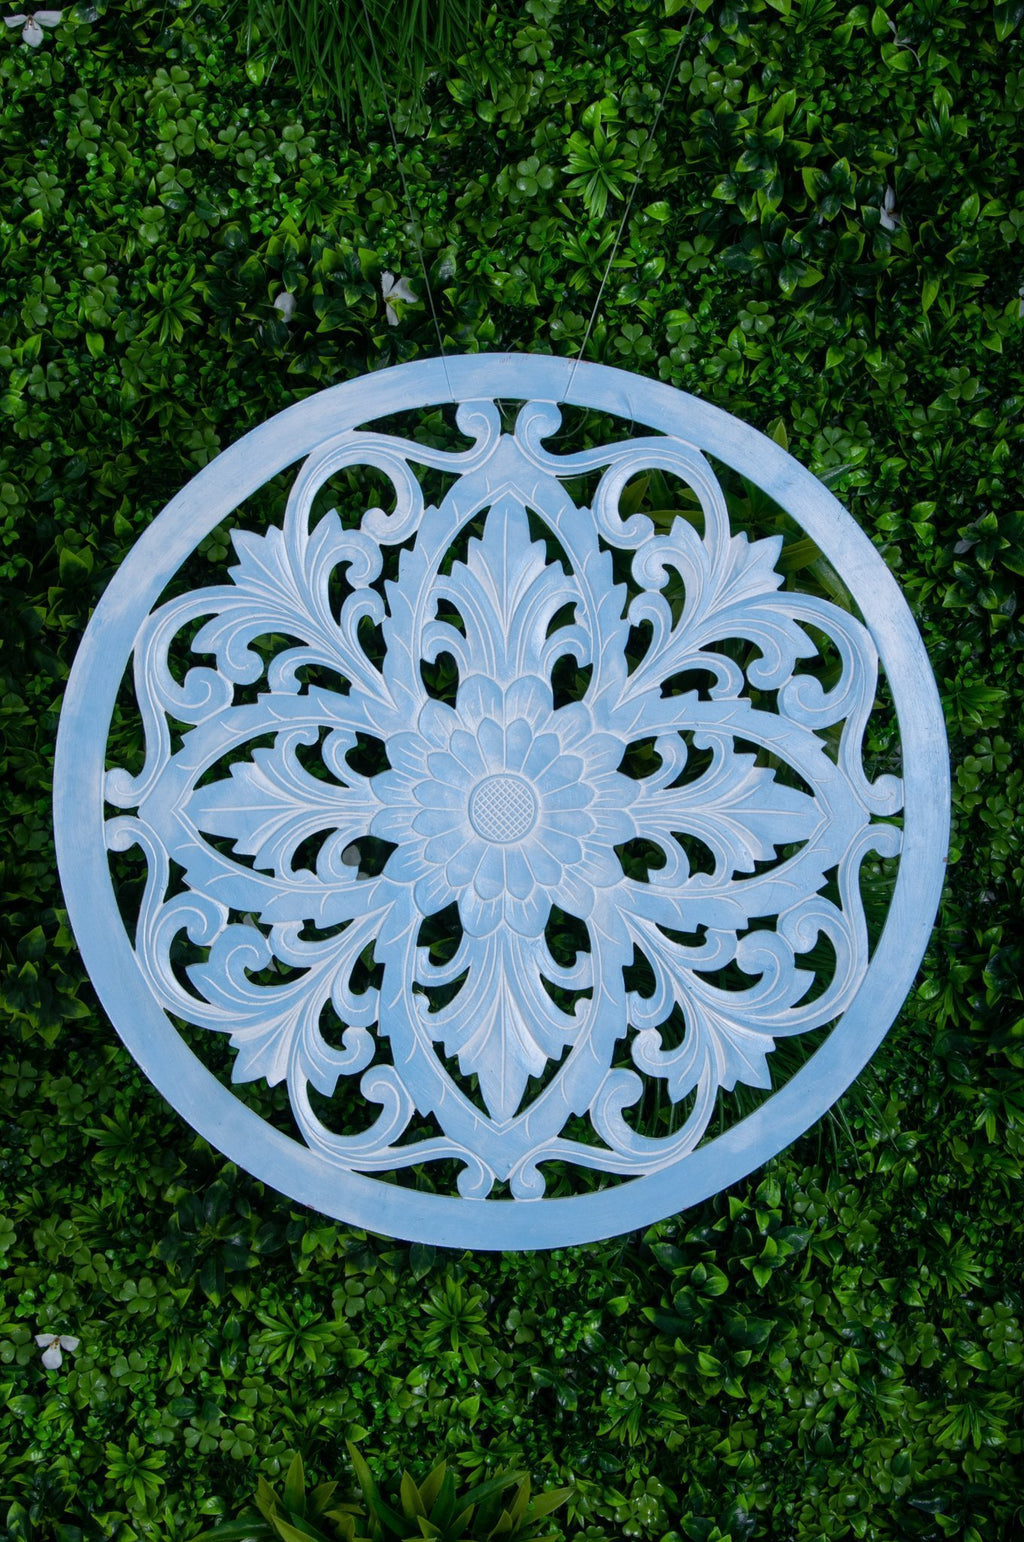 VVLH110 - ROUND WOOD LOTUS PANEL 80CM - BABY BLUE WASH